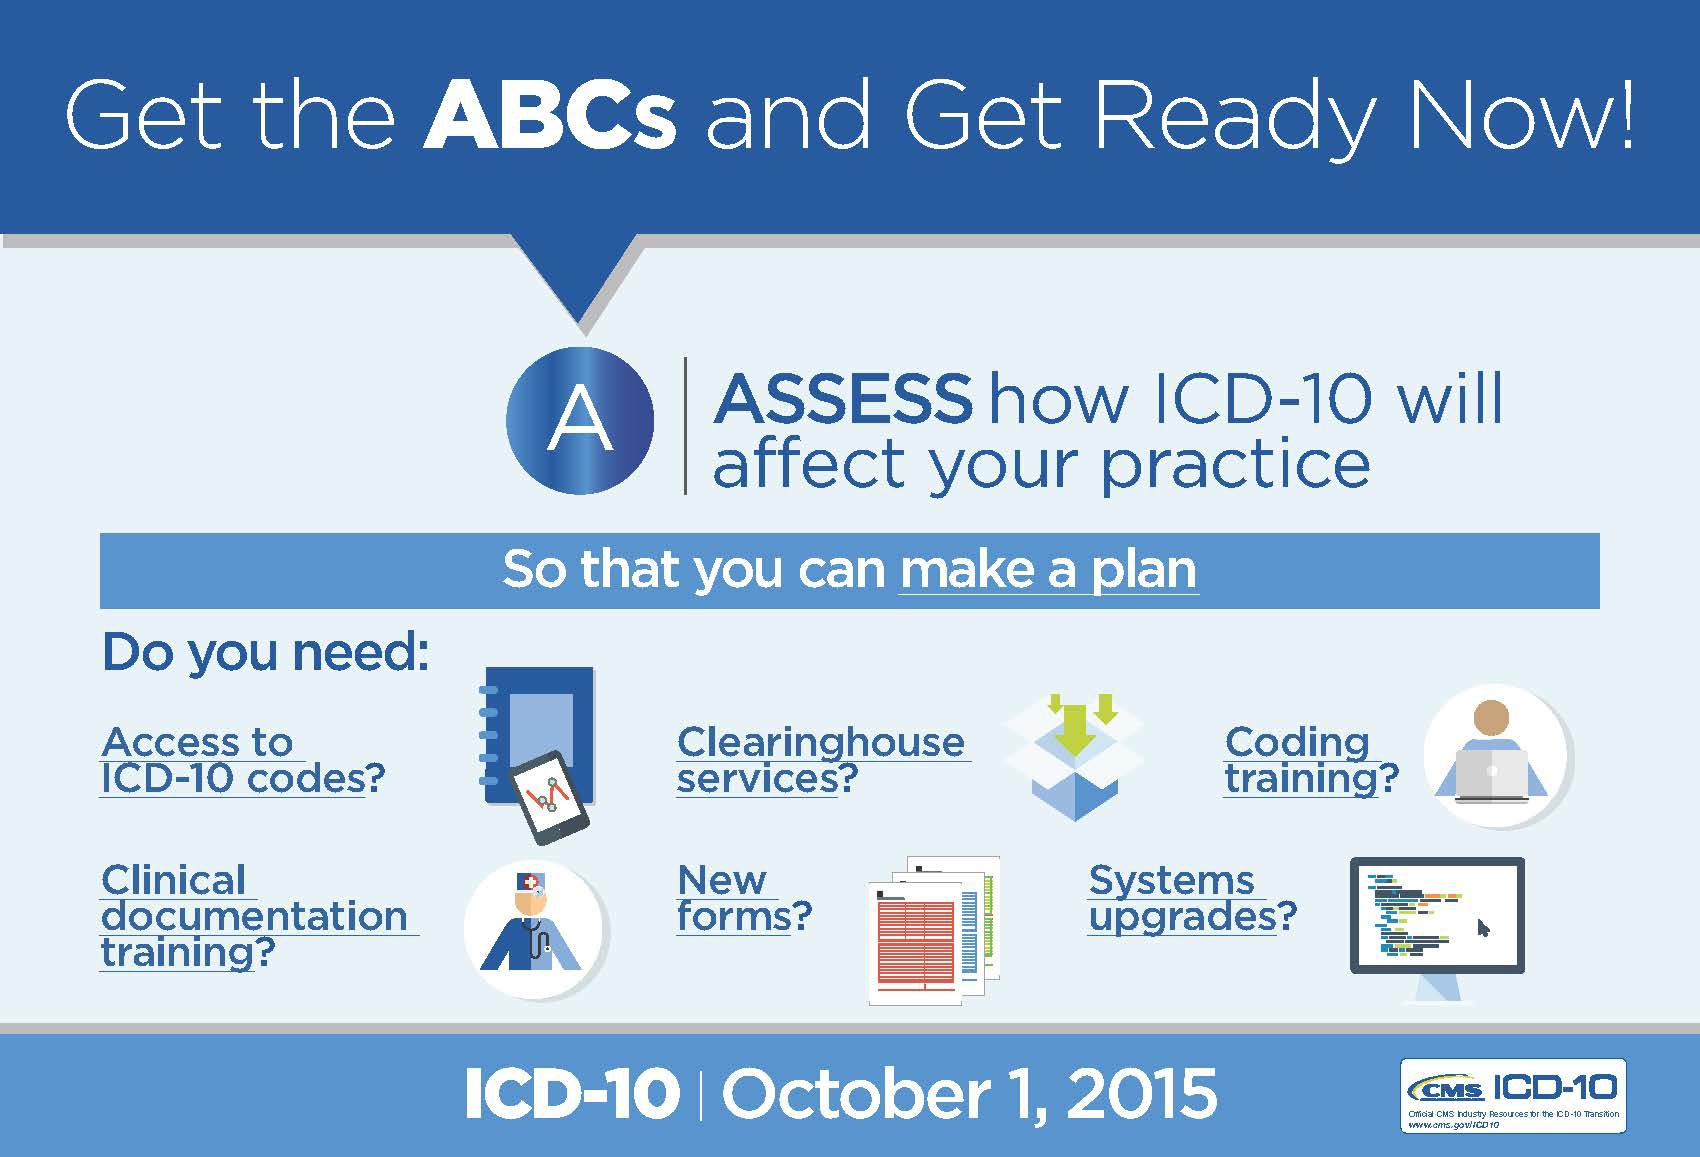 """A"" – ""Assess how ICD-10 will affect your practice."""